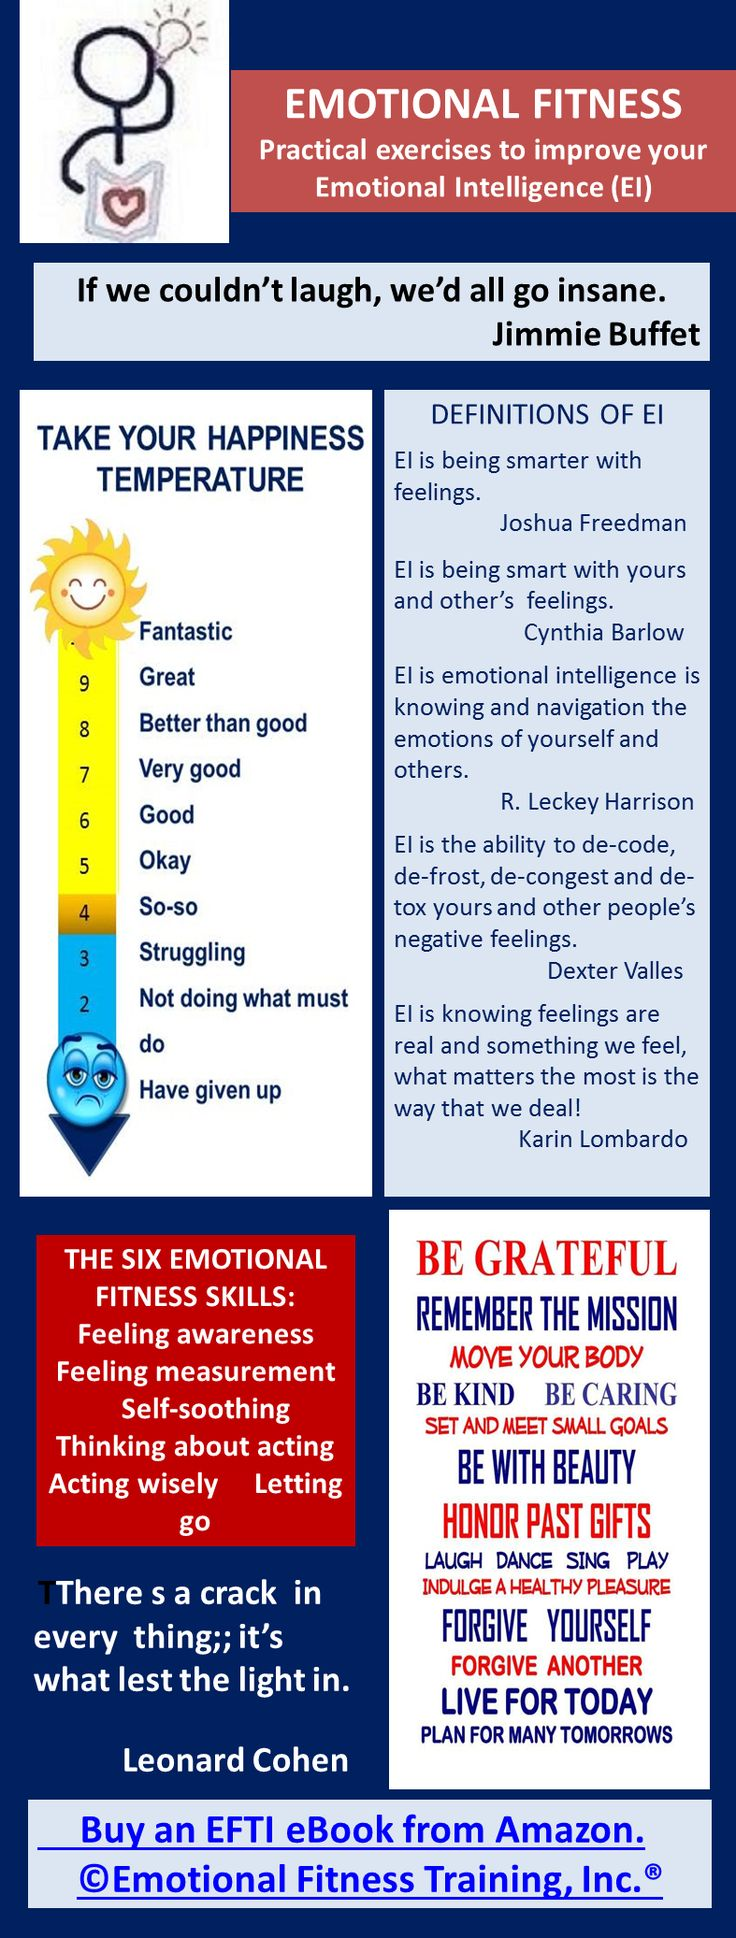 Practical Exercises To Achieve Emotional Fitness